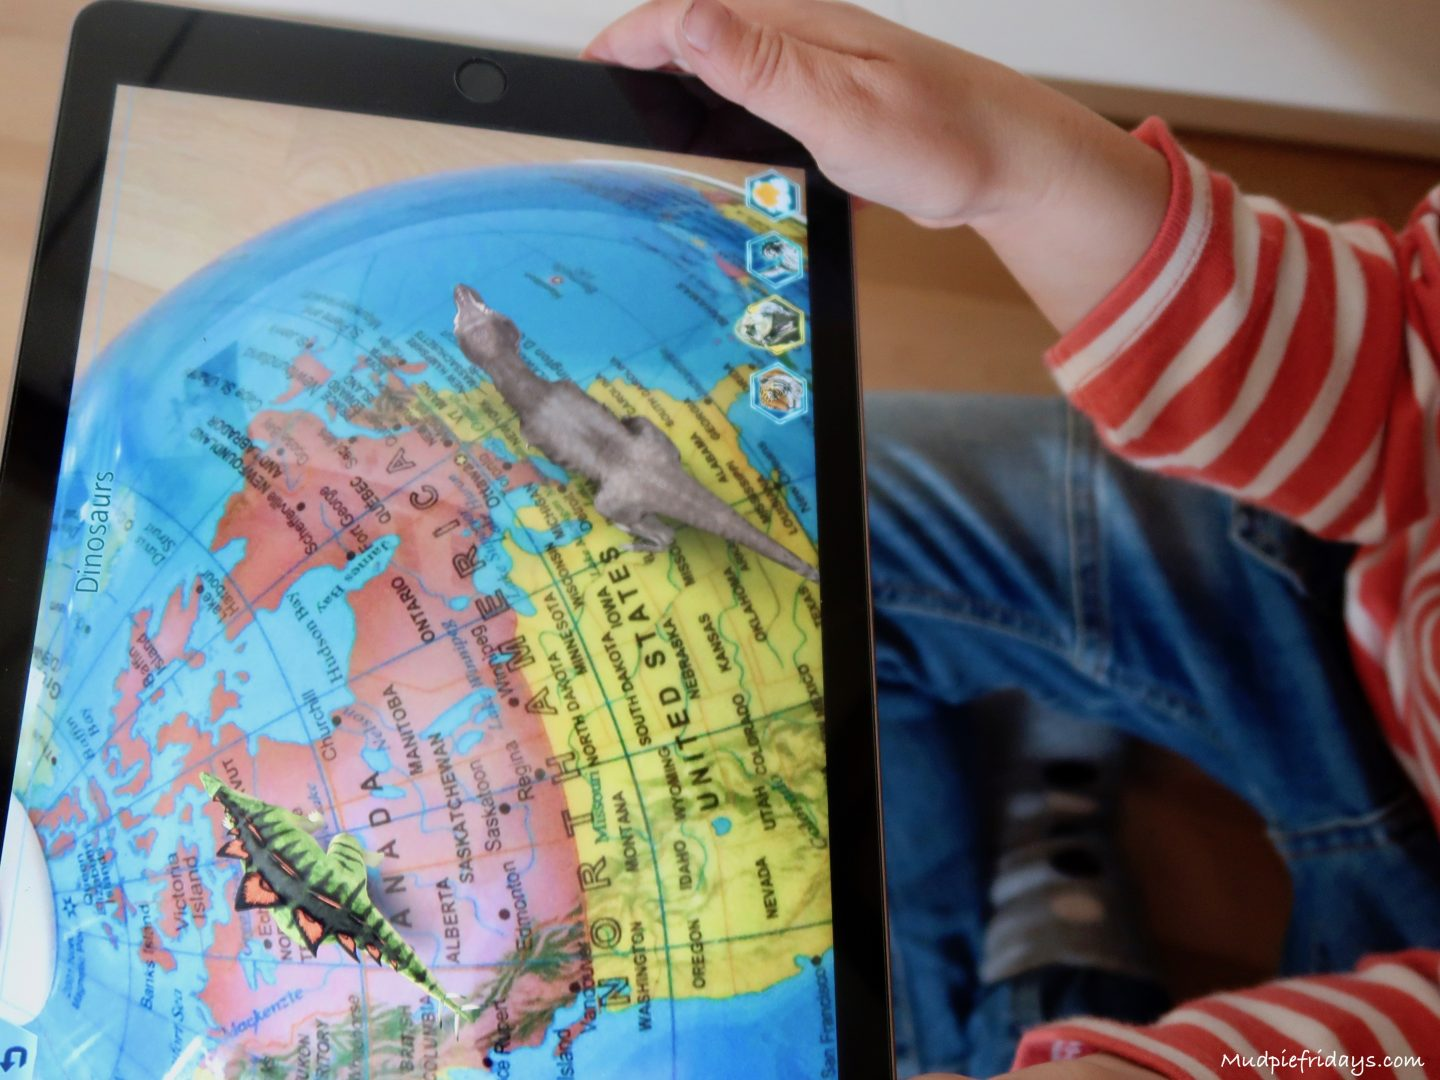 Oregon scientific ar day night globe review the app allows you to unlock augmented reality content all monkey needs to do is select the options he would like and run the ipad across the globe gumiabroncs Choice Image